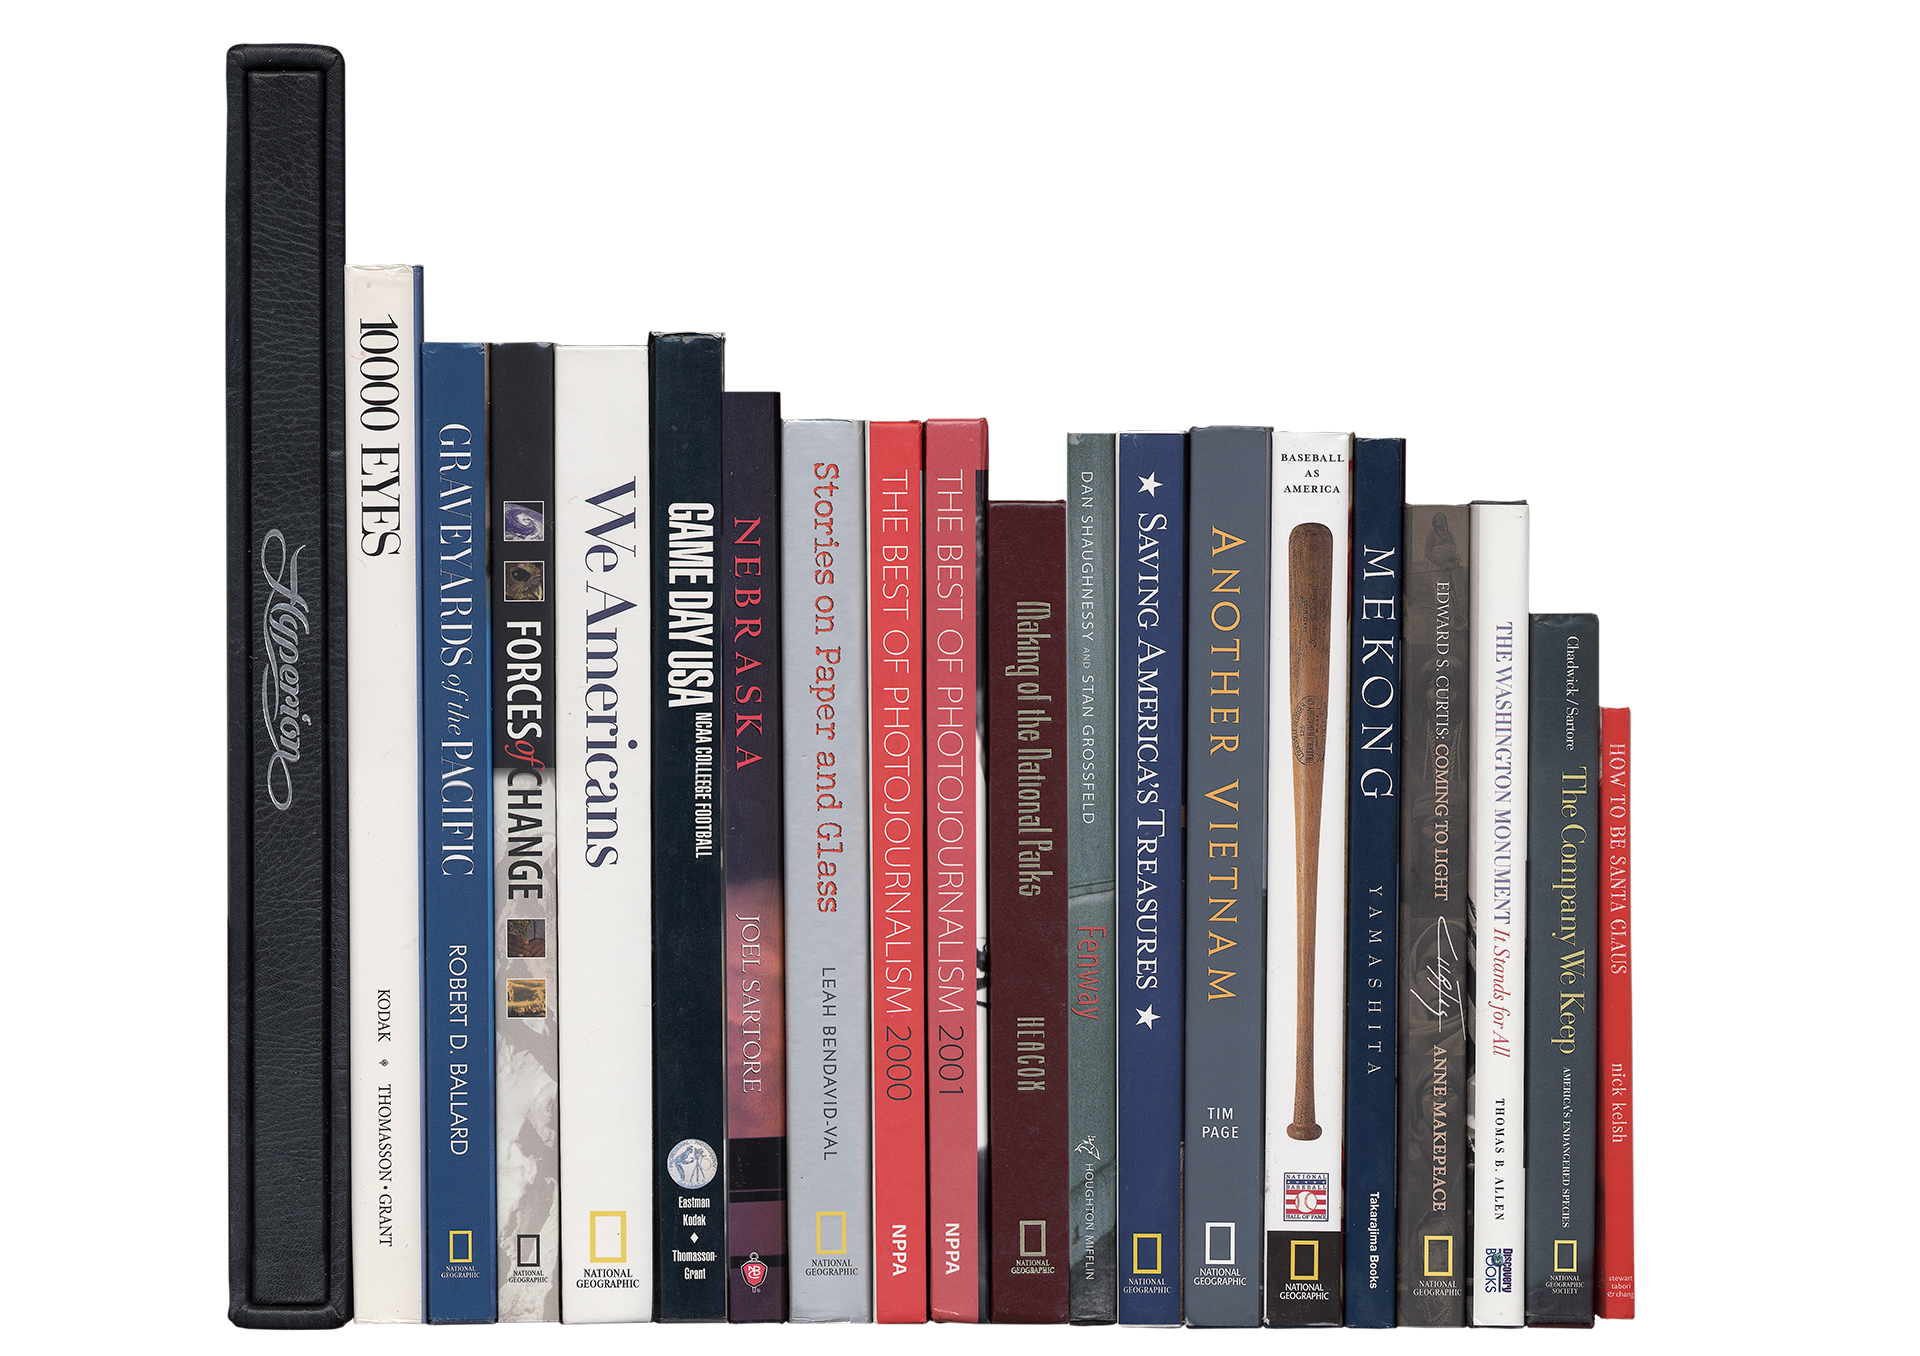 BOOKS DESIGN, PACKAGING AND PRODUCTION